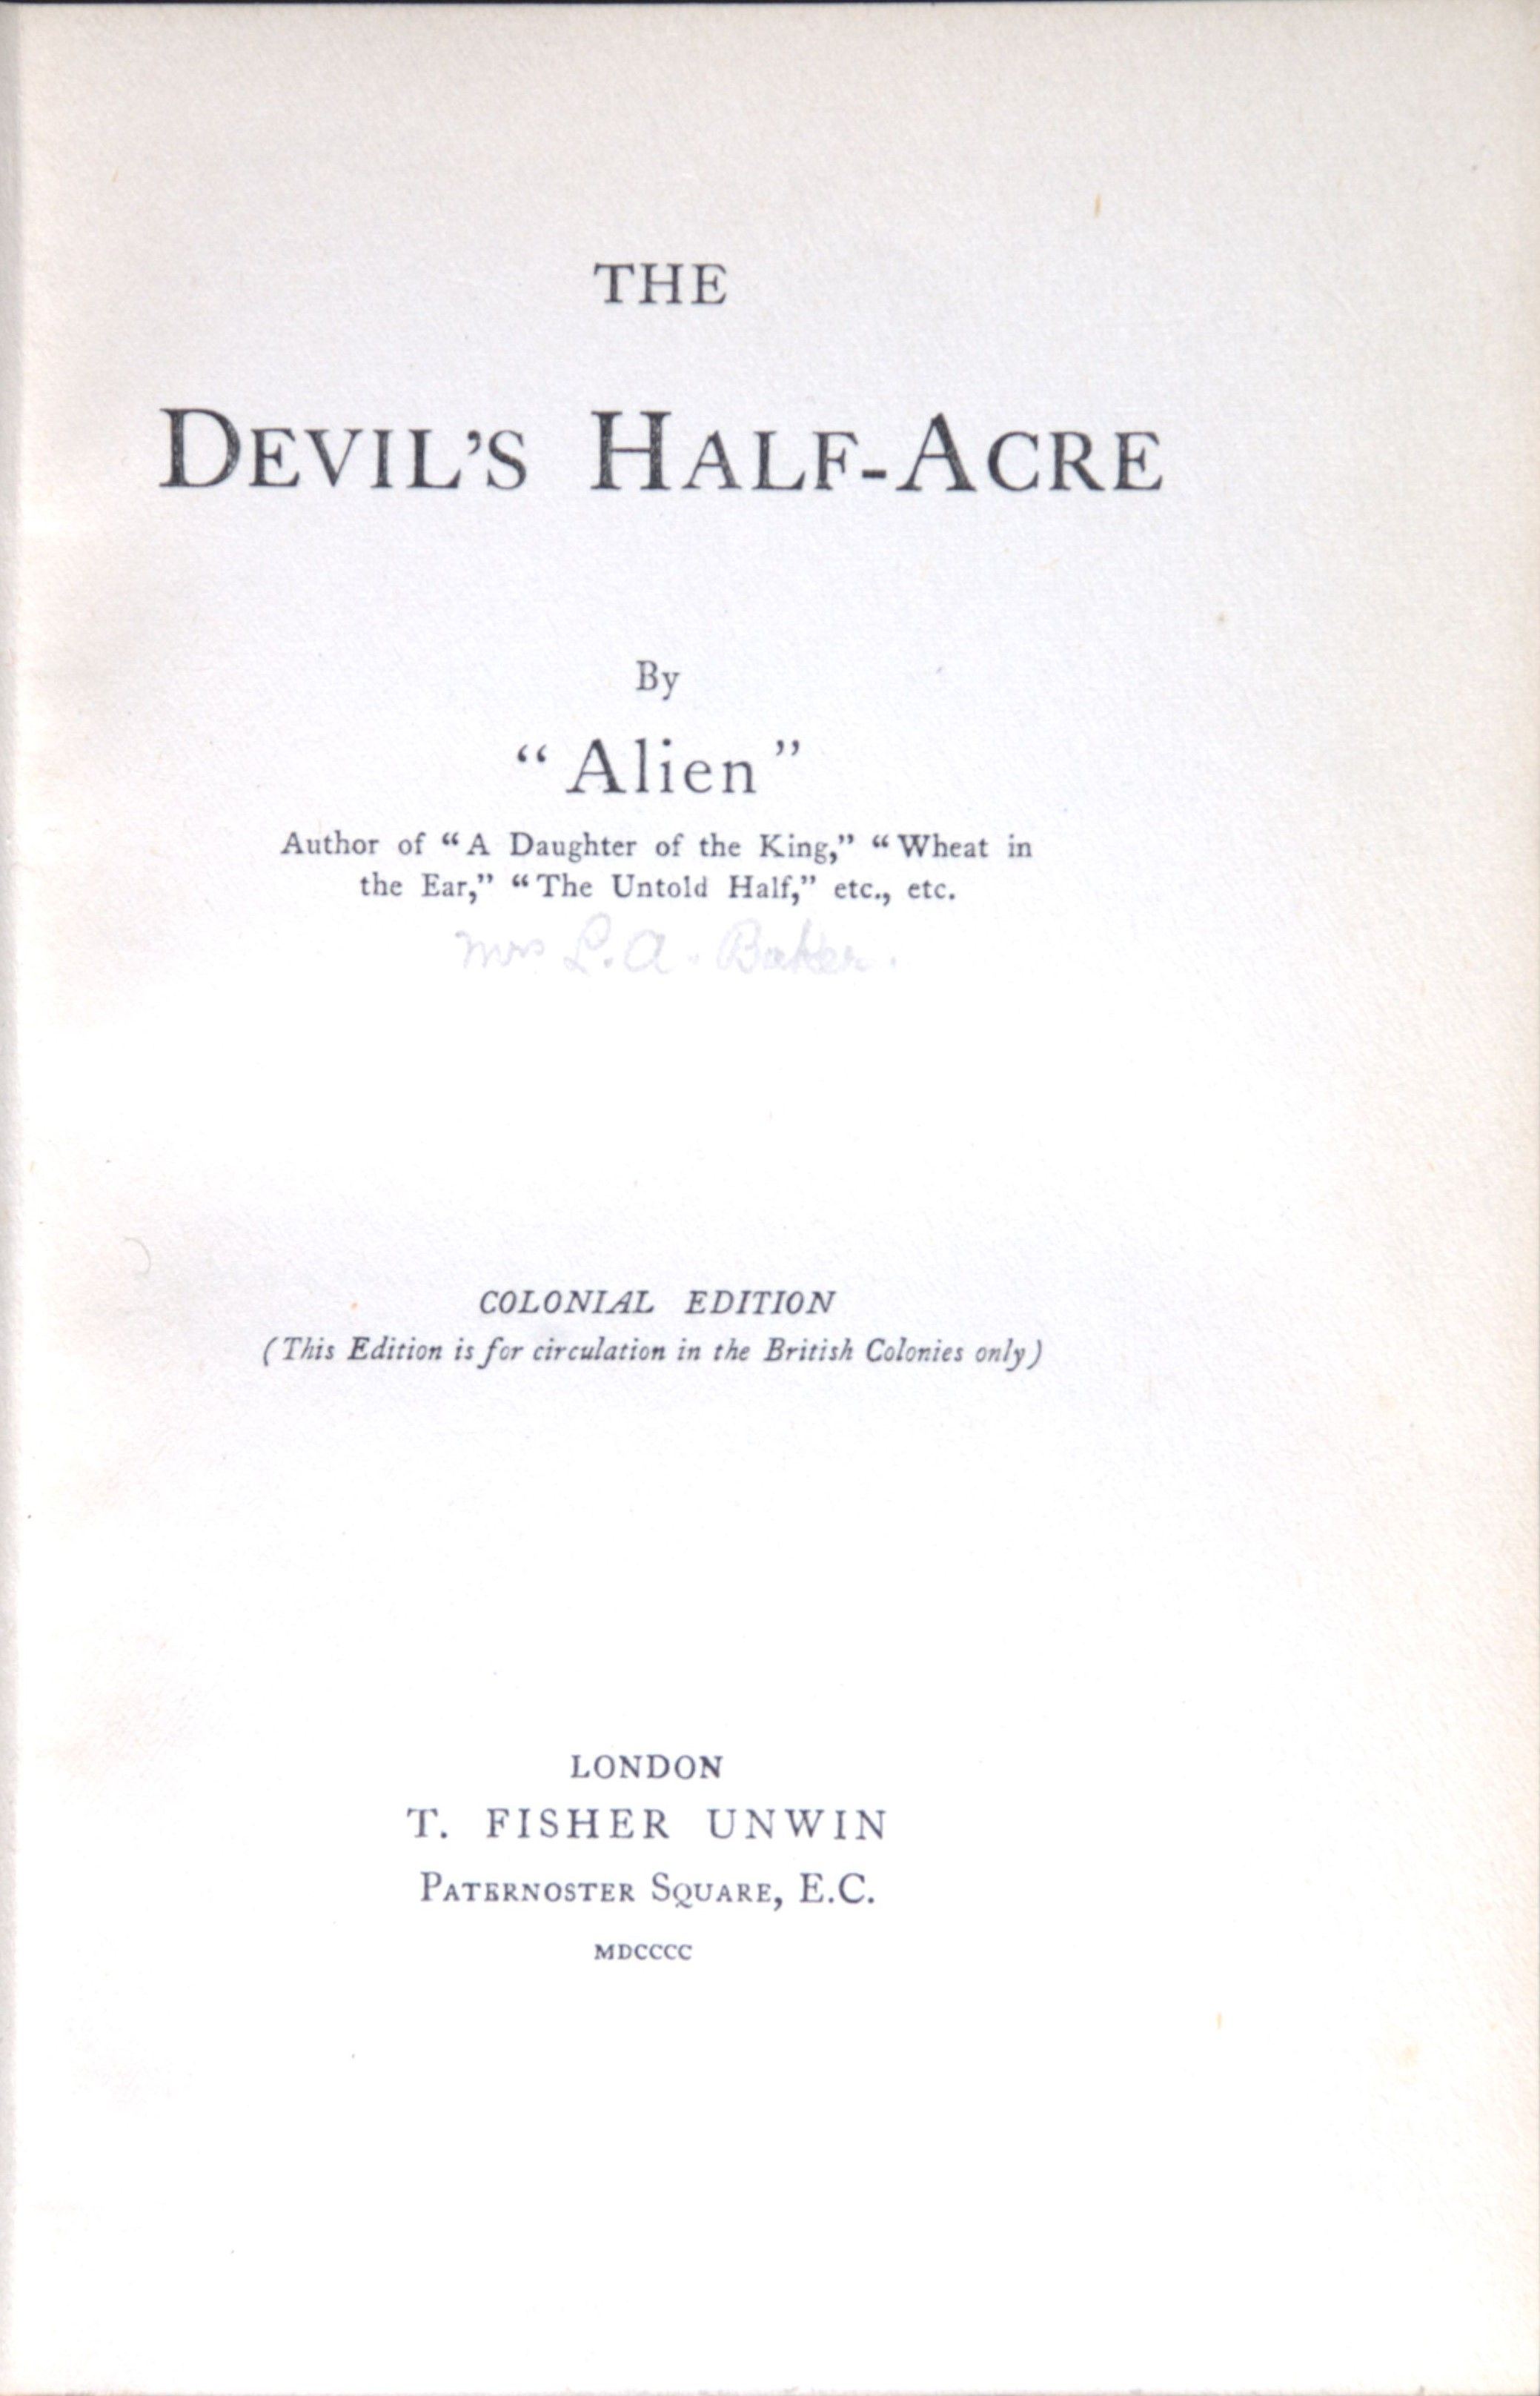 Alien. The devil's half-acre. London: T. Fisher Unwin, 1900.